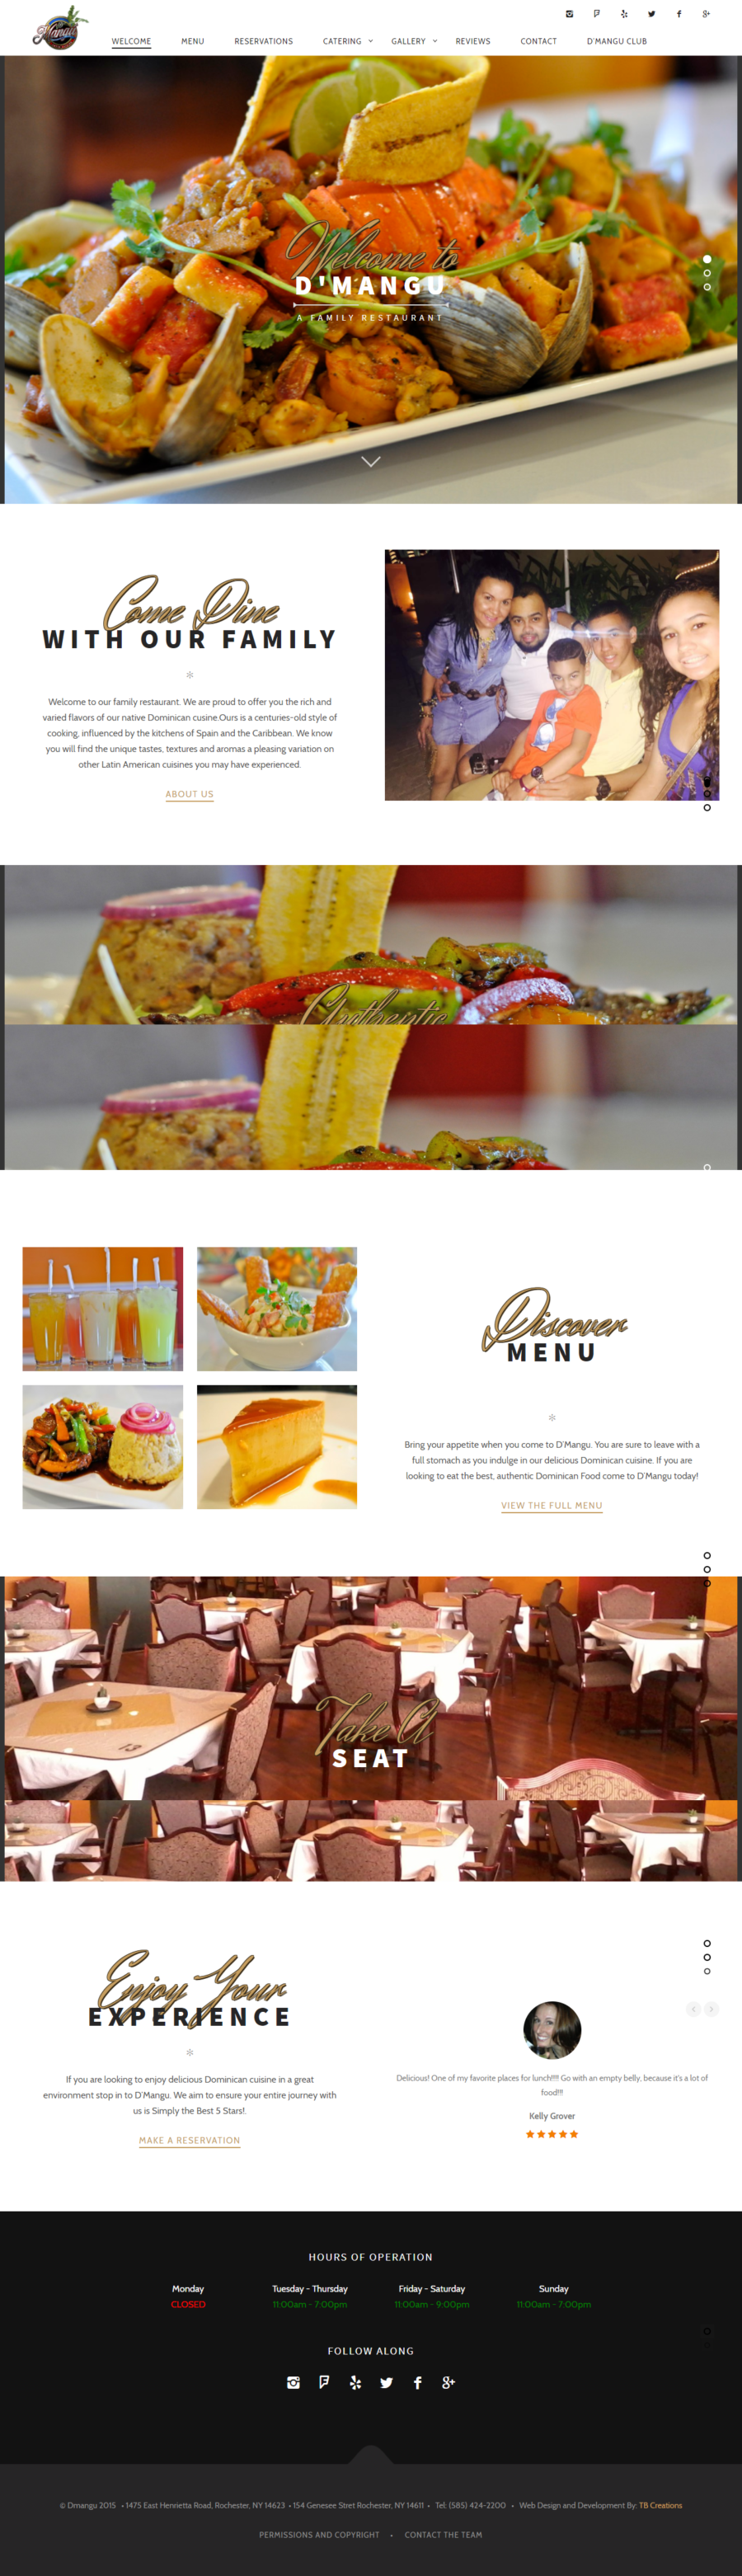 D'Mangu Restaurant Website